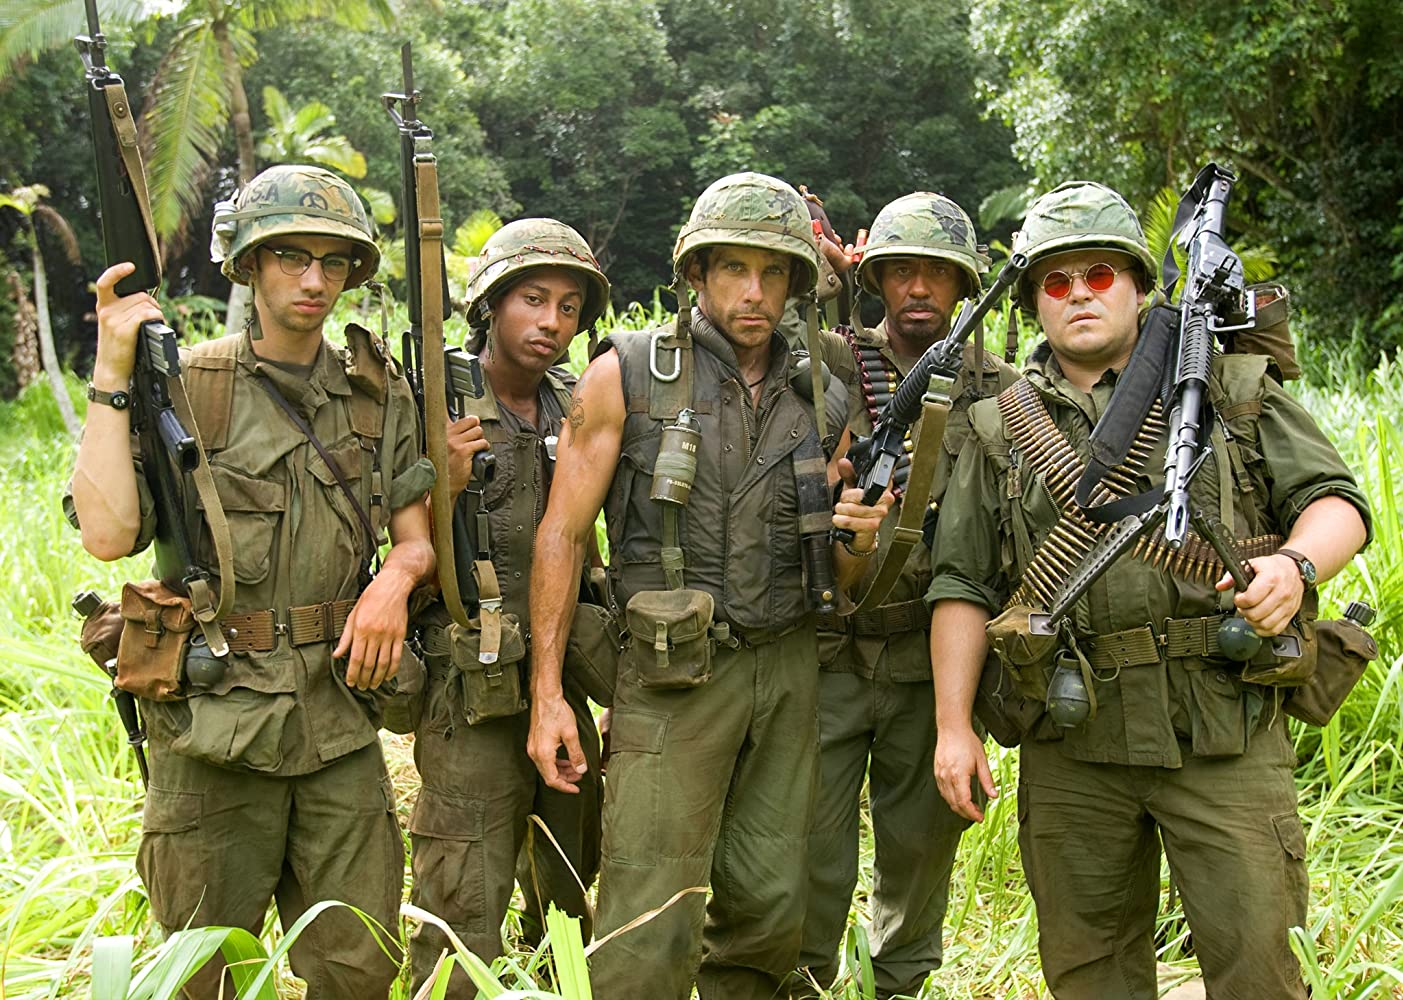 Robert Downey Jr., Ben Stiller, Jay Baruchel, Jack Black, and Brandon T. Jackson in Tropic Thunder (2008)